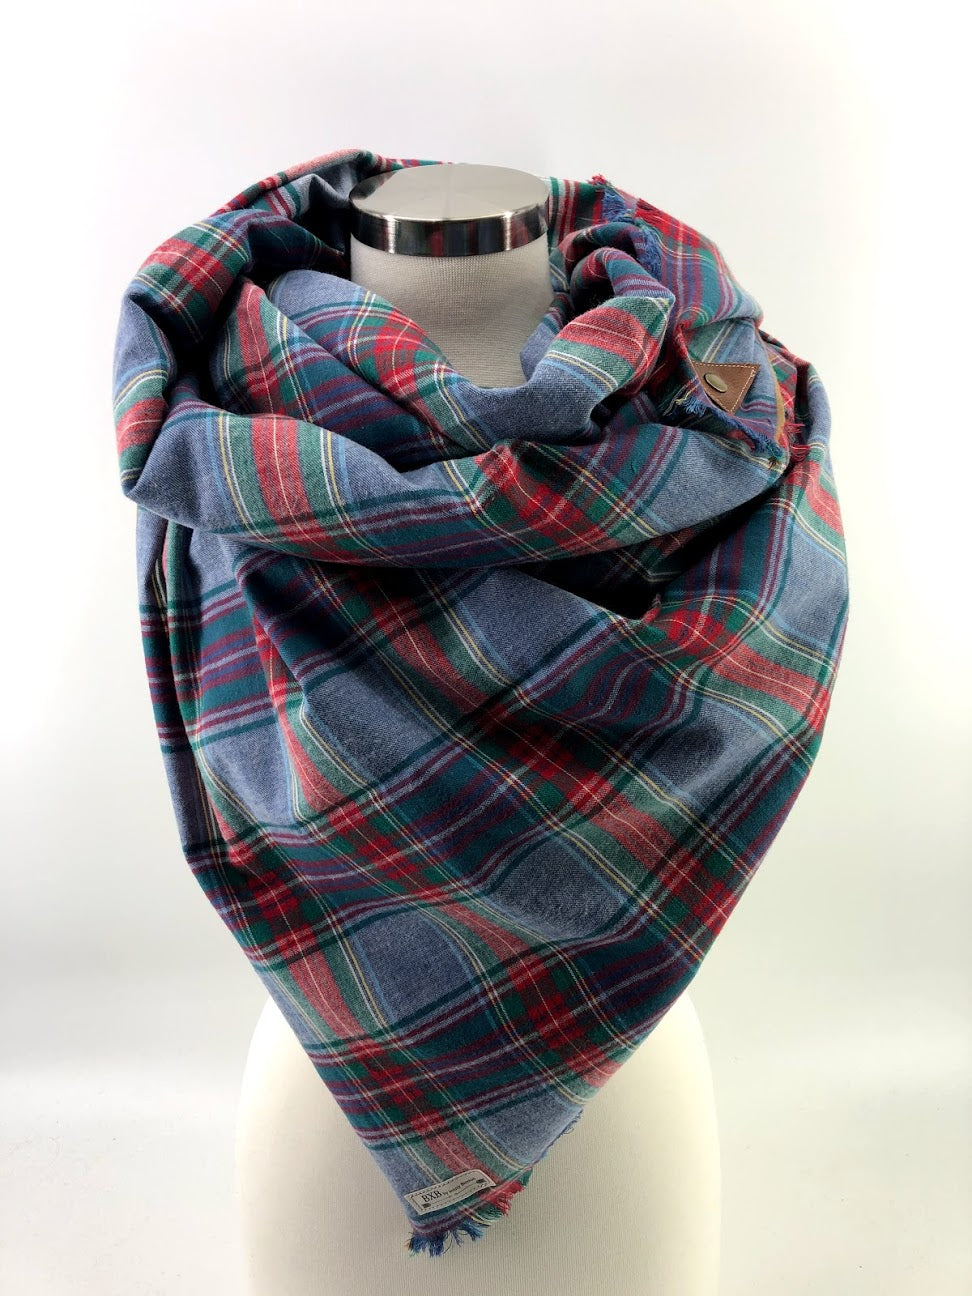 Chambray Blue & Red Plaid Blanket Scarf with Leather Detail